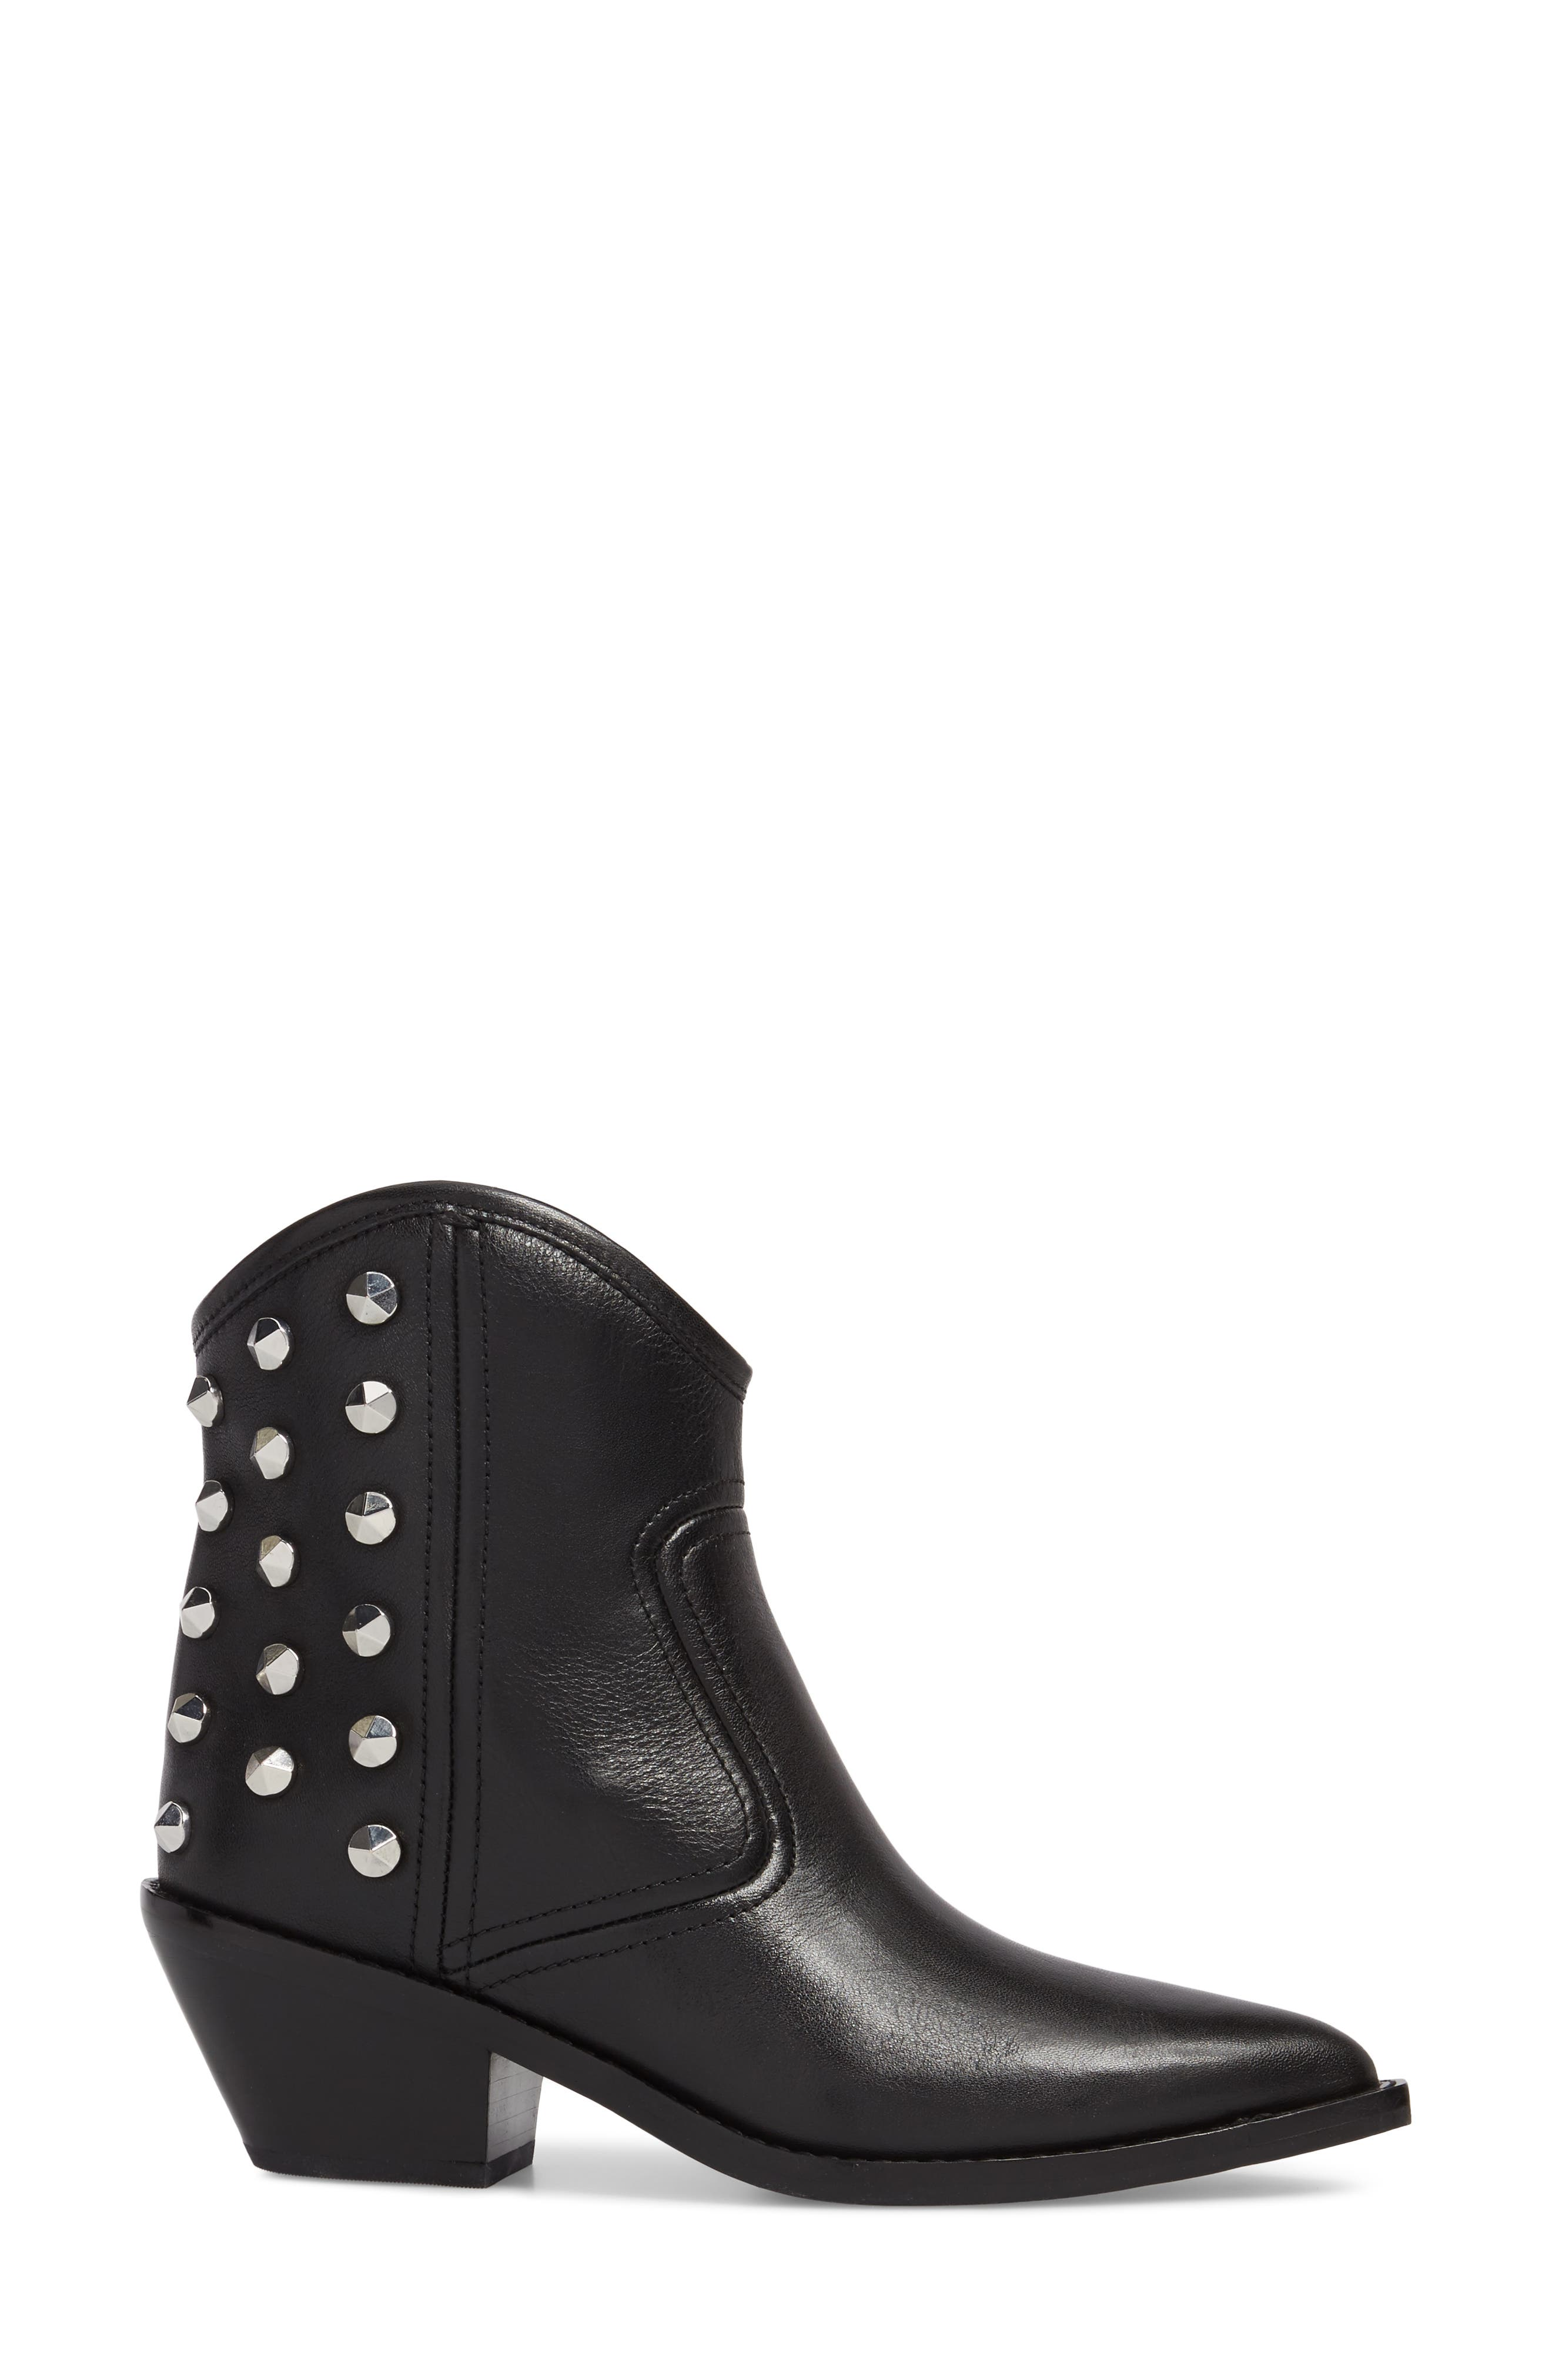 MARC FISHER LTD,                             Marc Fisher Baily Studded Western Bootie,                             Alternate thumbnail 3, color,                             001